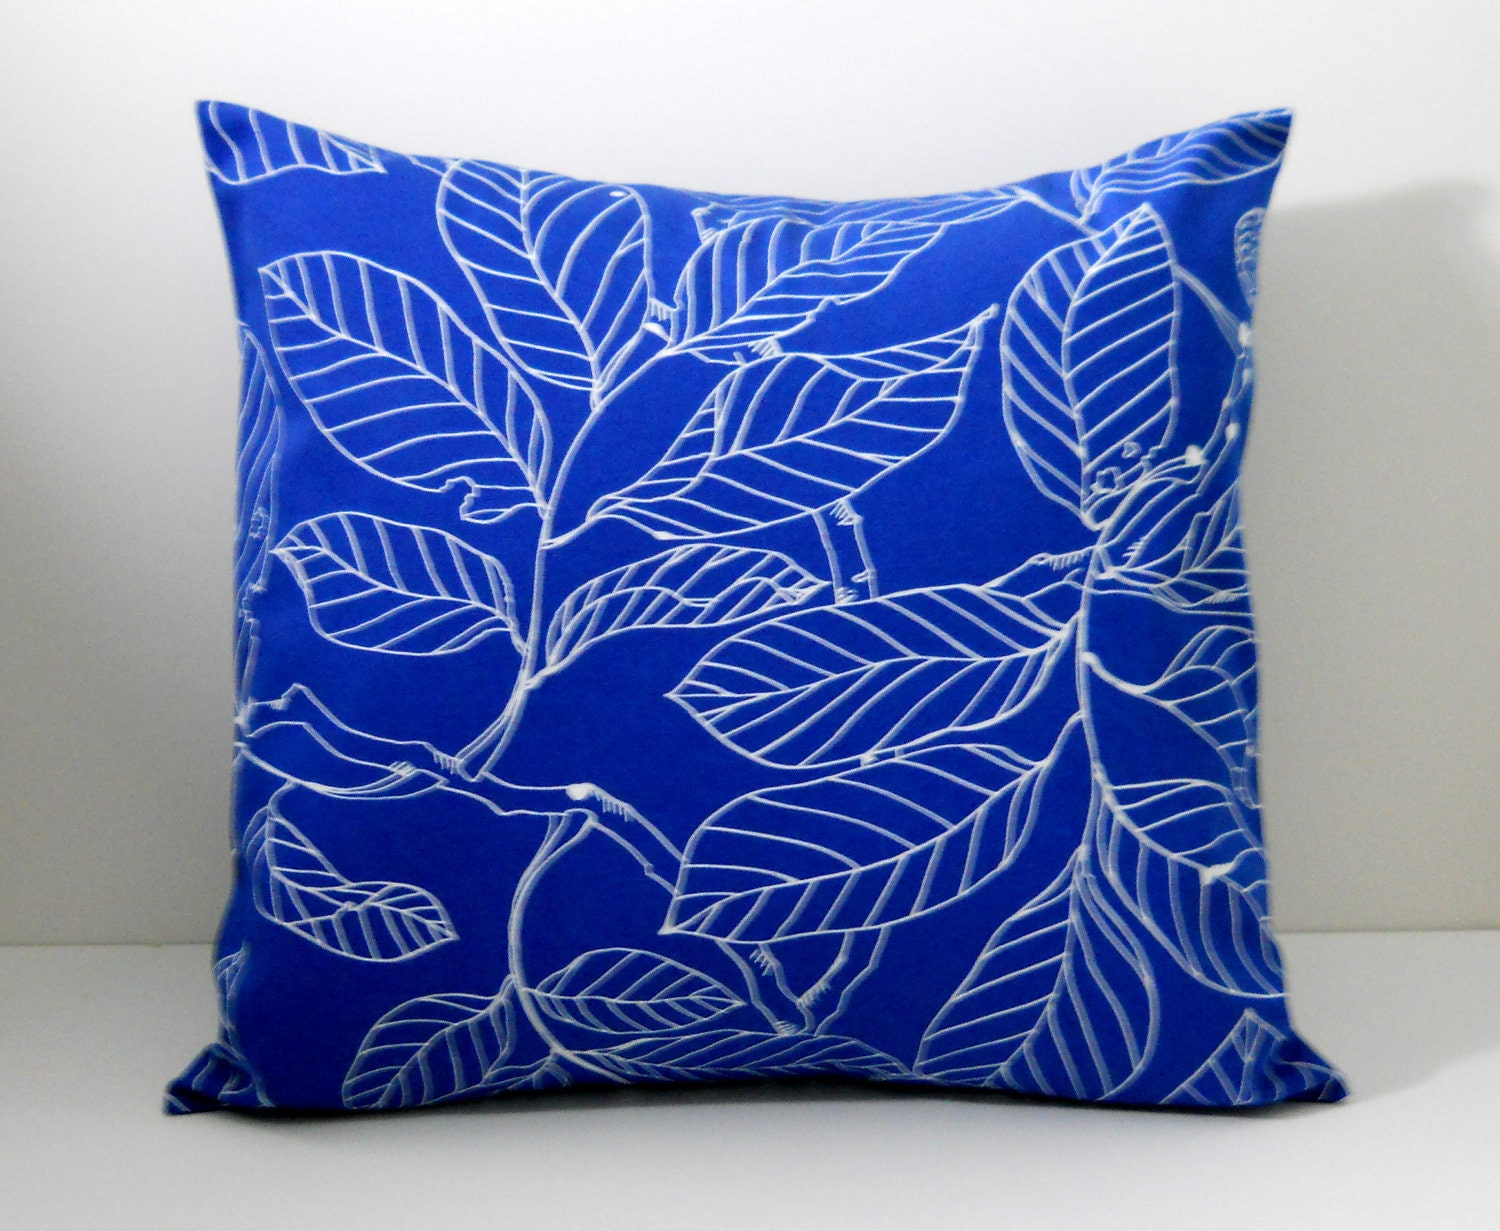 Throw Pillow Cover 18 X 18 : Throw Pillow Cover 18 x 18 Blue IKEA Canvas by JHFabricCreations